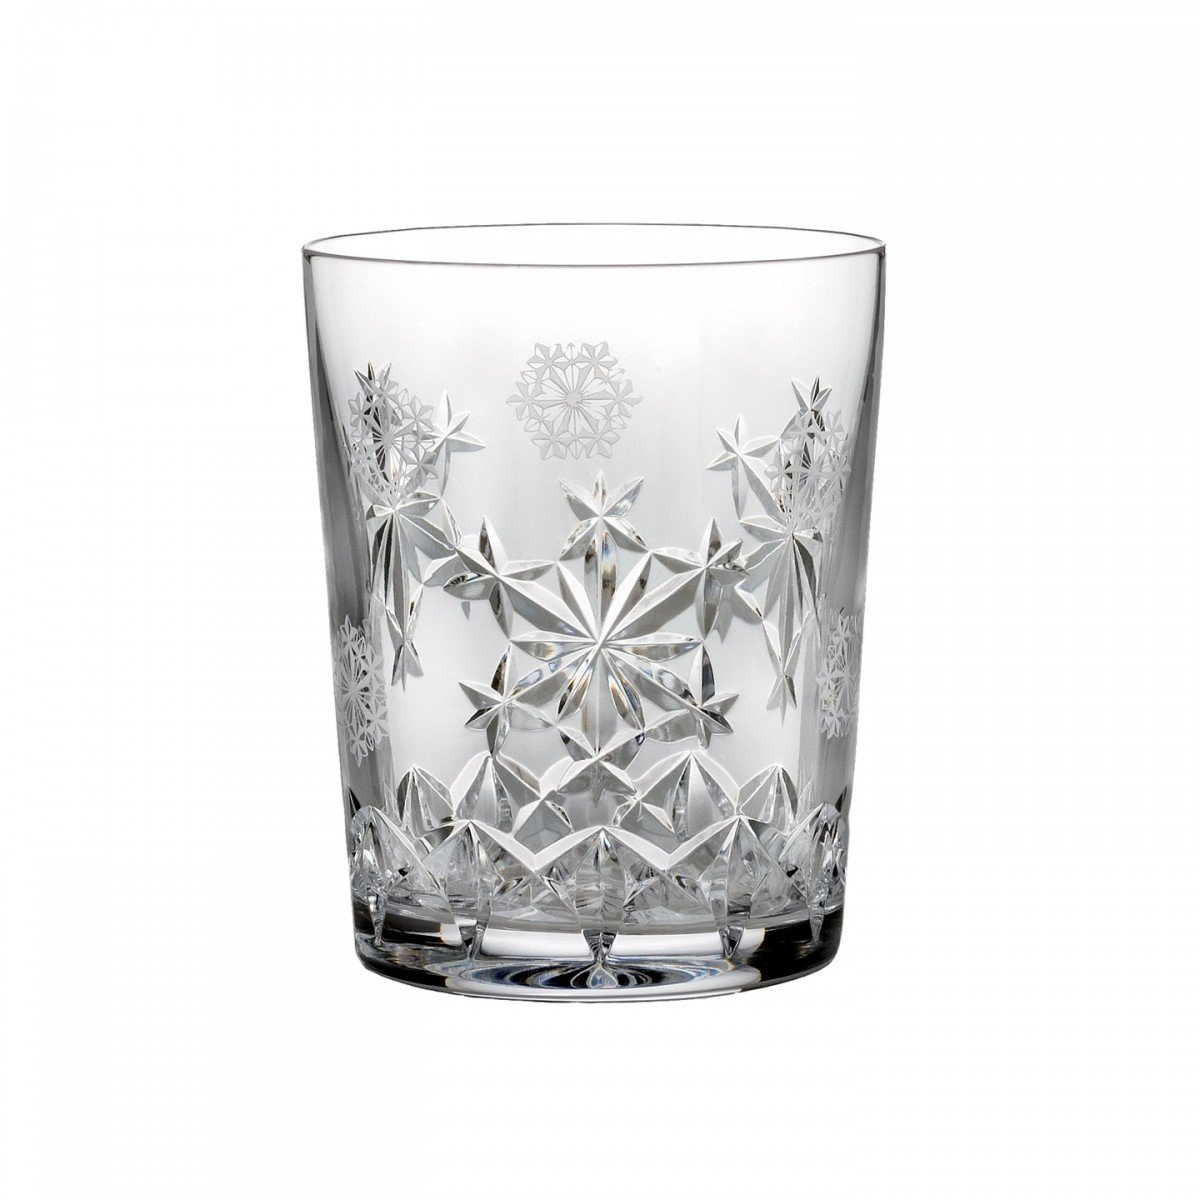 Waterford Snowflake Wishes 2013 ''Goodwill'' Kerry Double Old Fashioned Glass